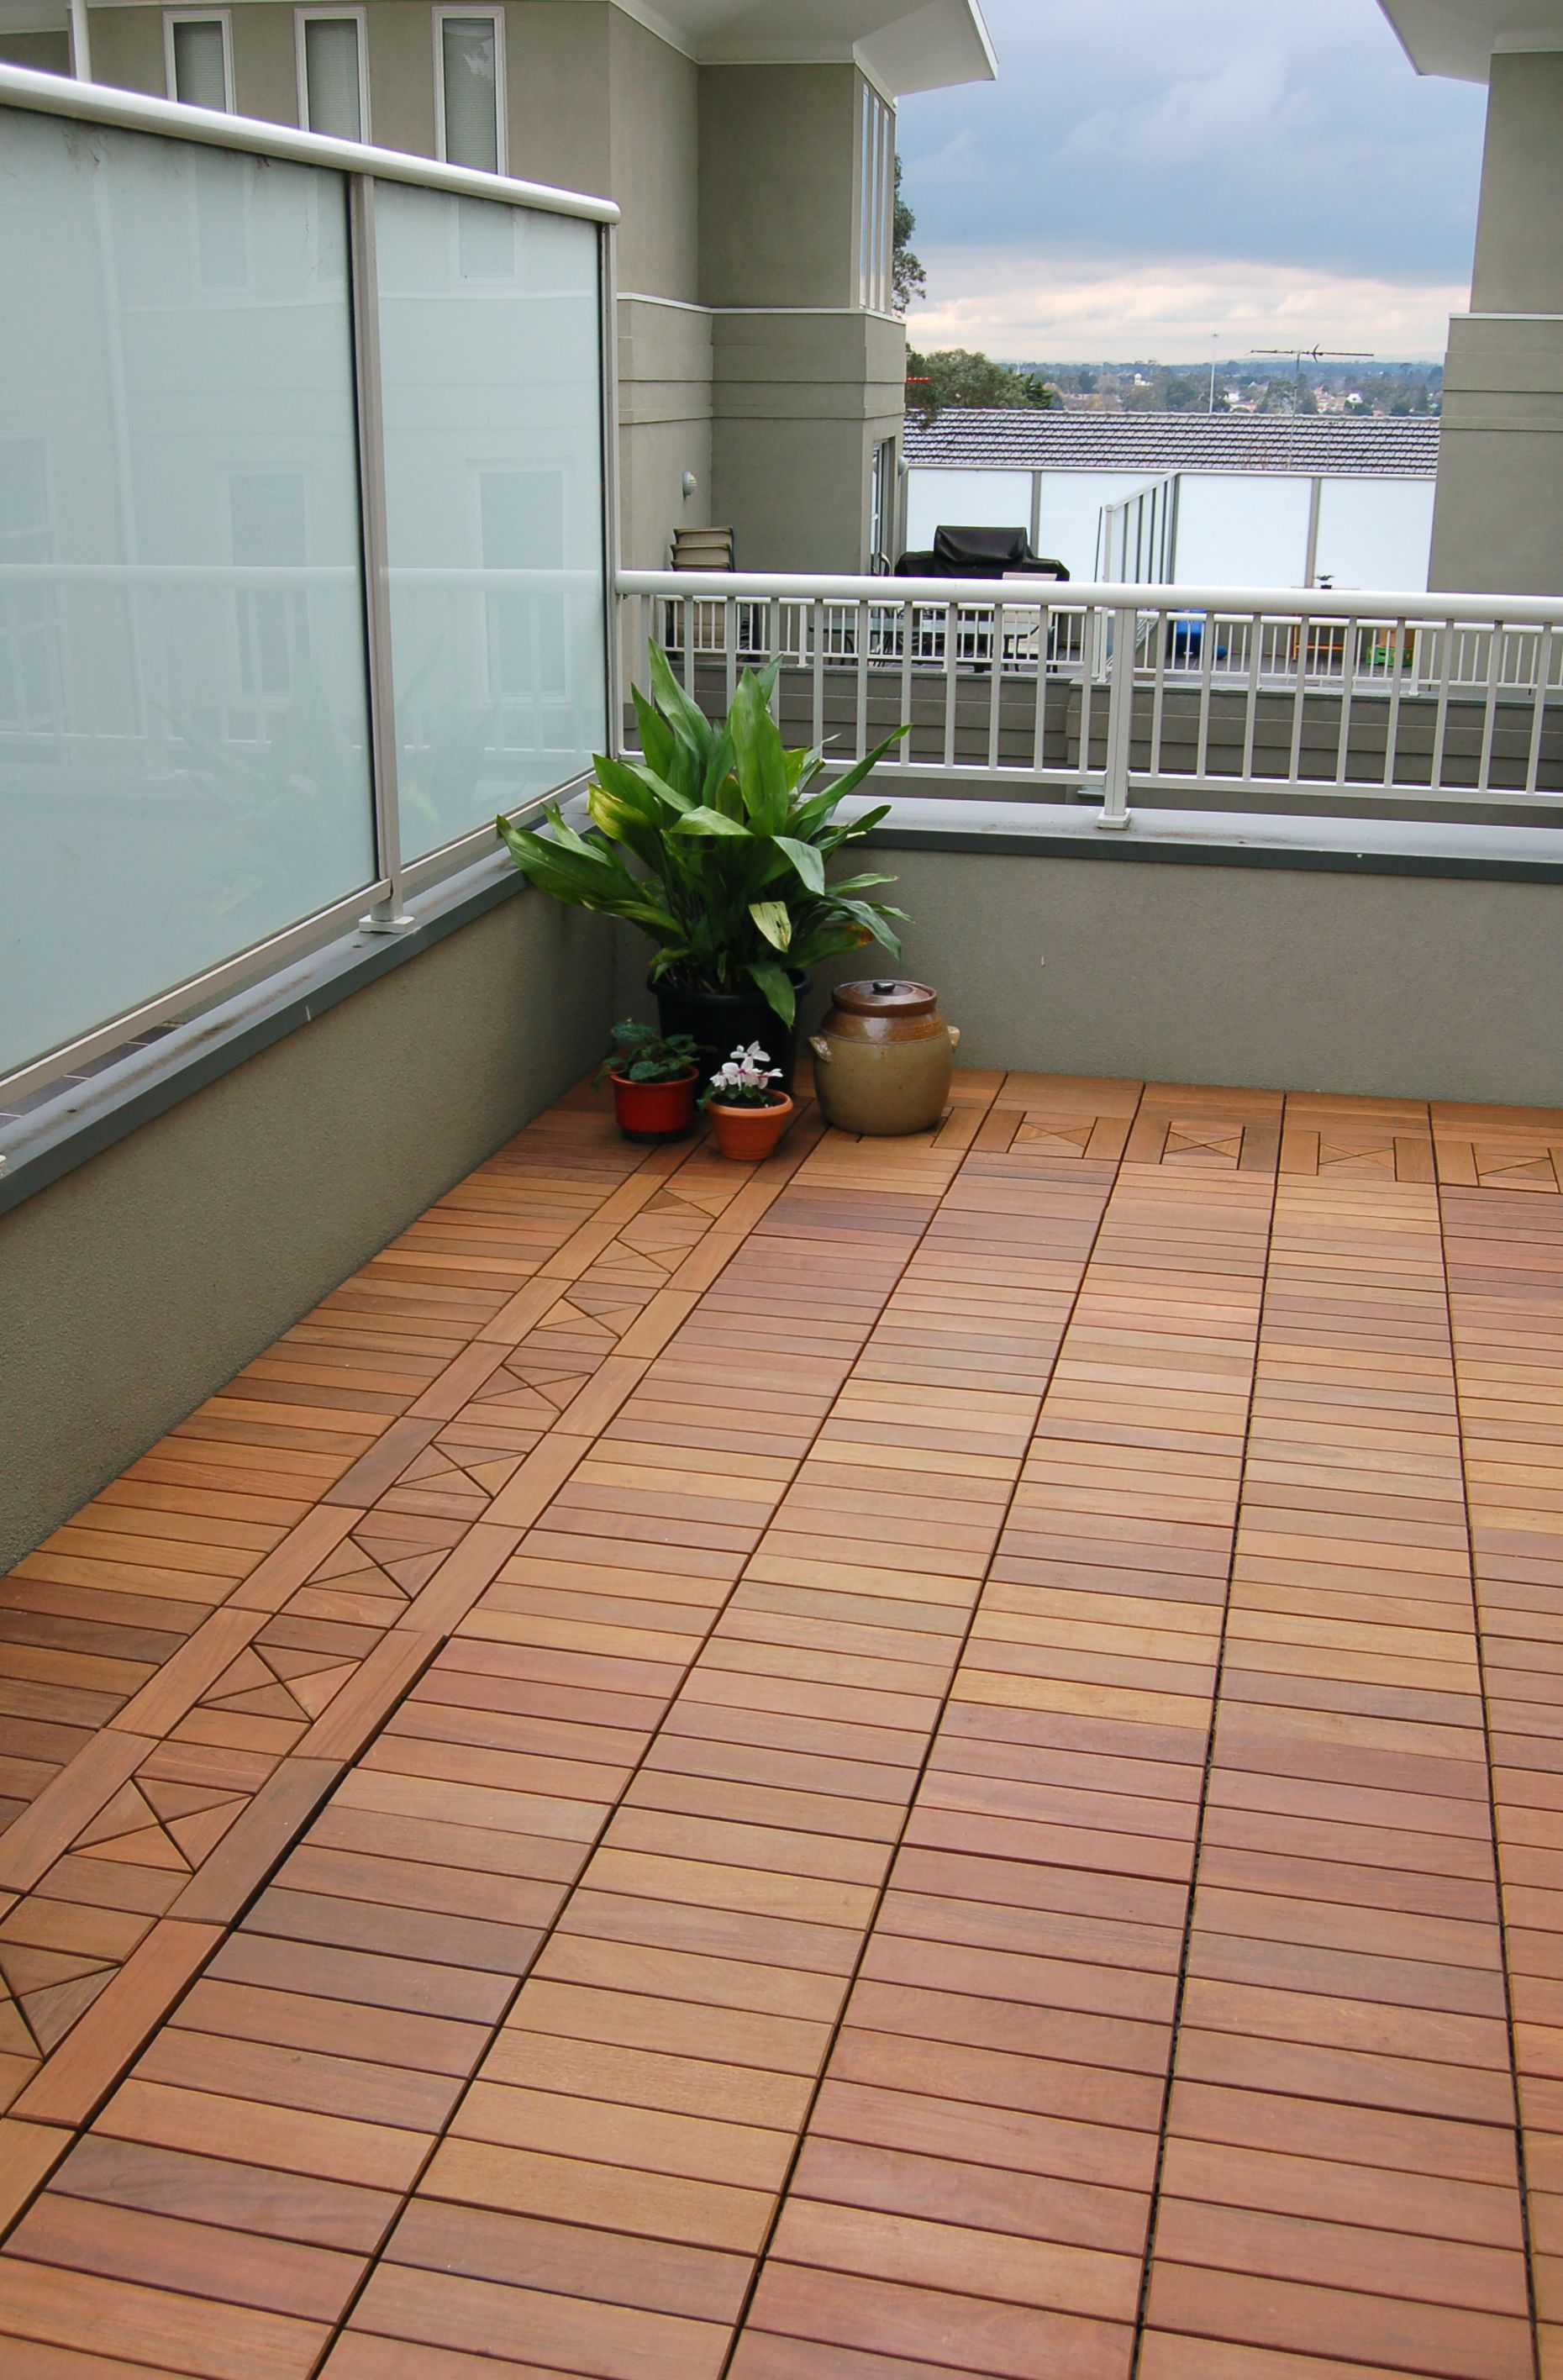 Swiftdeck Colorado And Sierra Ipe Wood Tiles